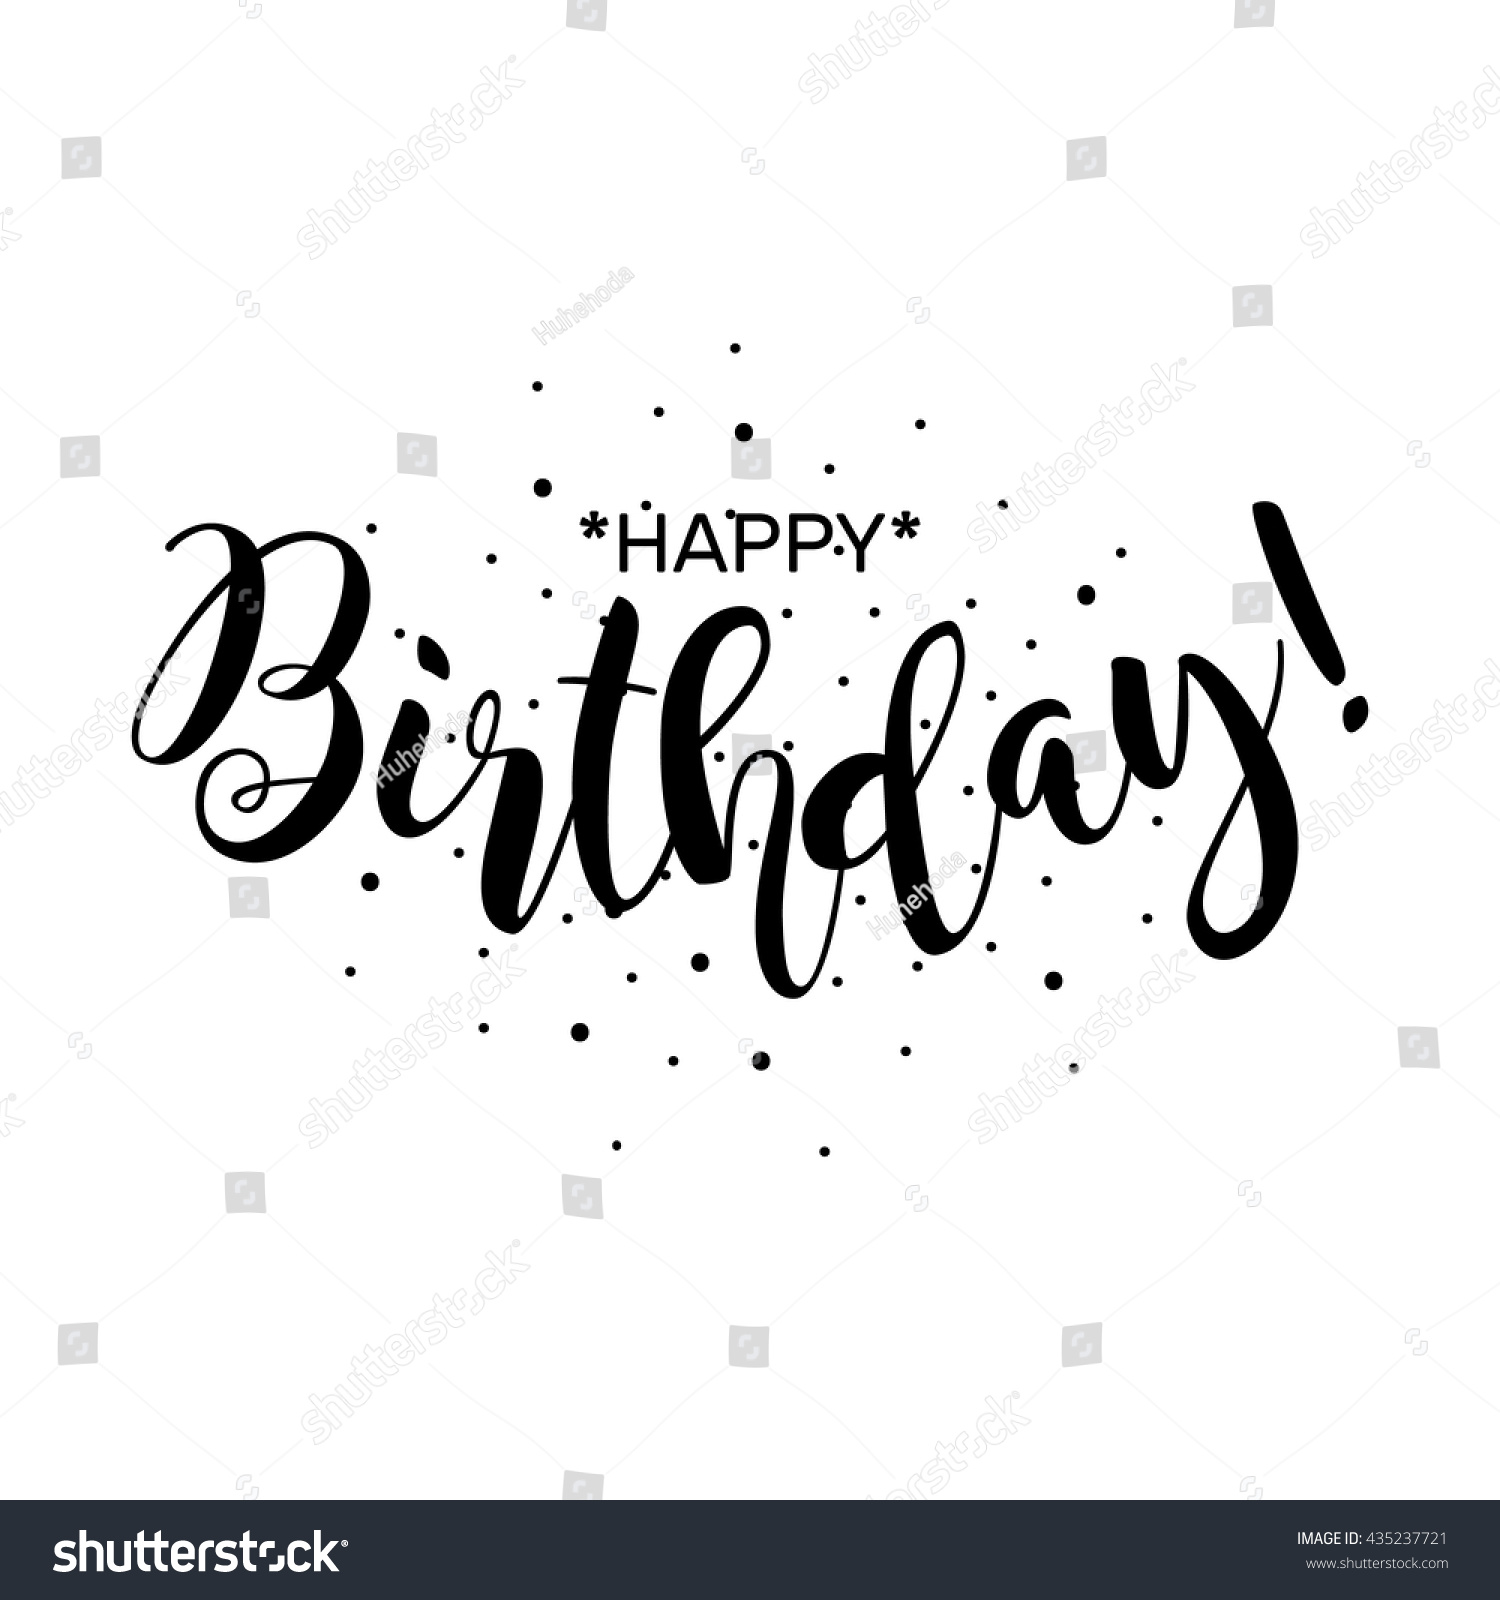 Royalty free happy birthday beautiful greeting card 435237721 beautiful greeting card poster with calligraphy black text word hand drawn design m4hsunfo